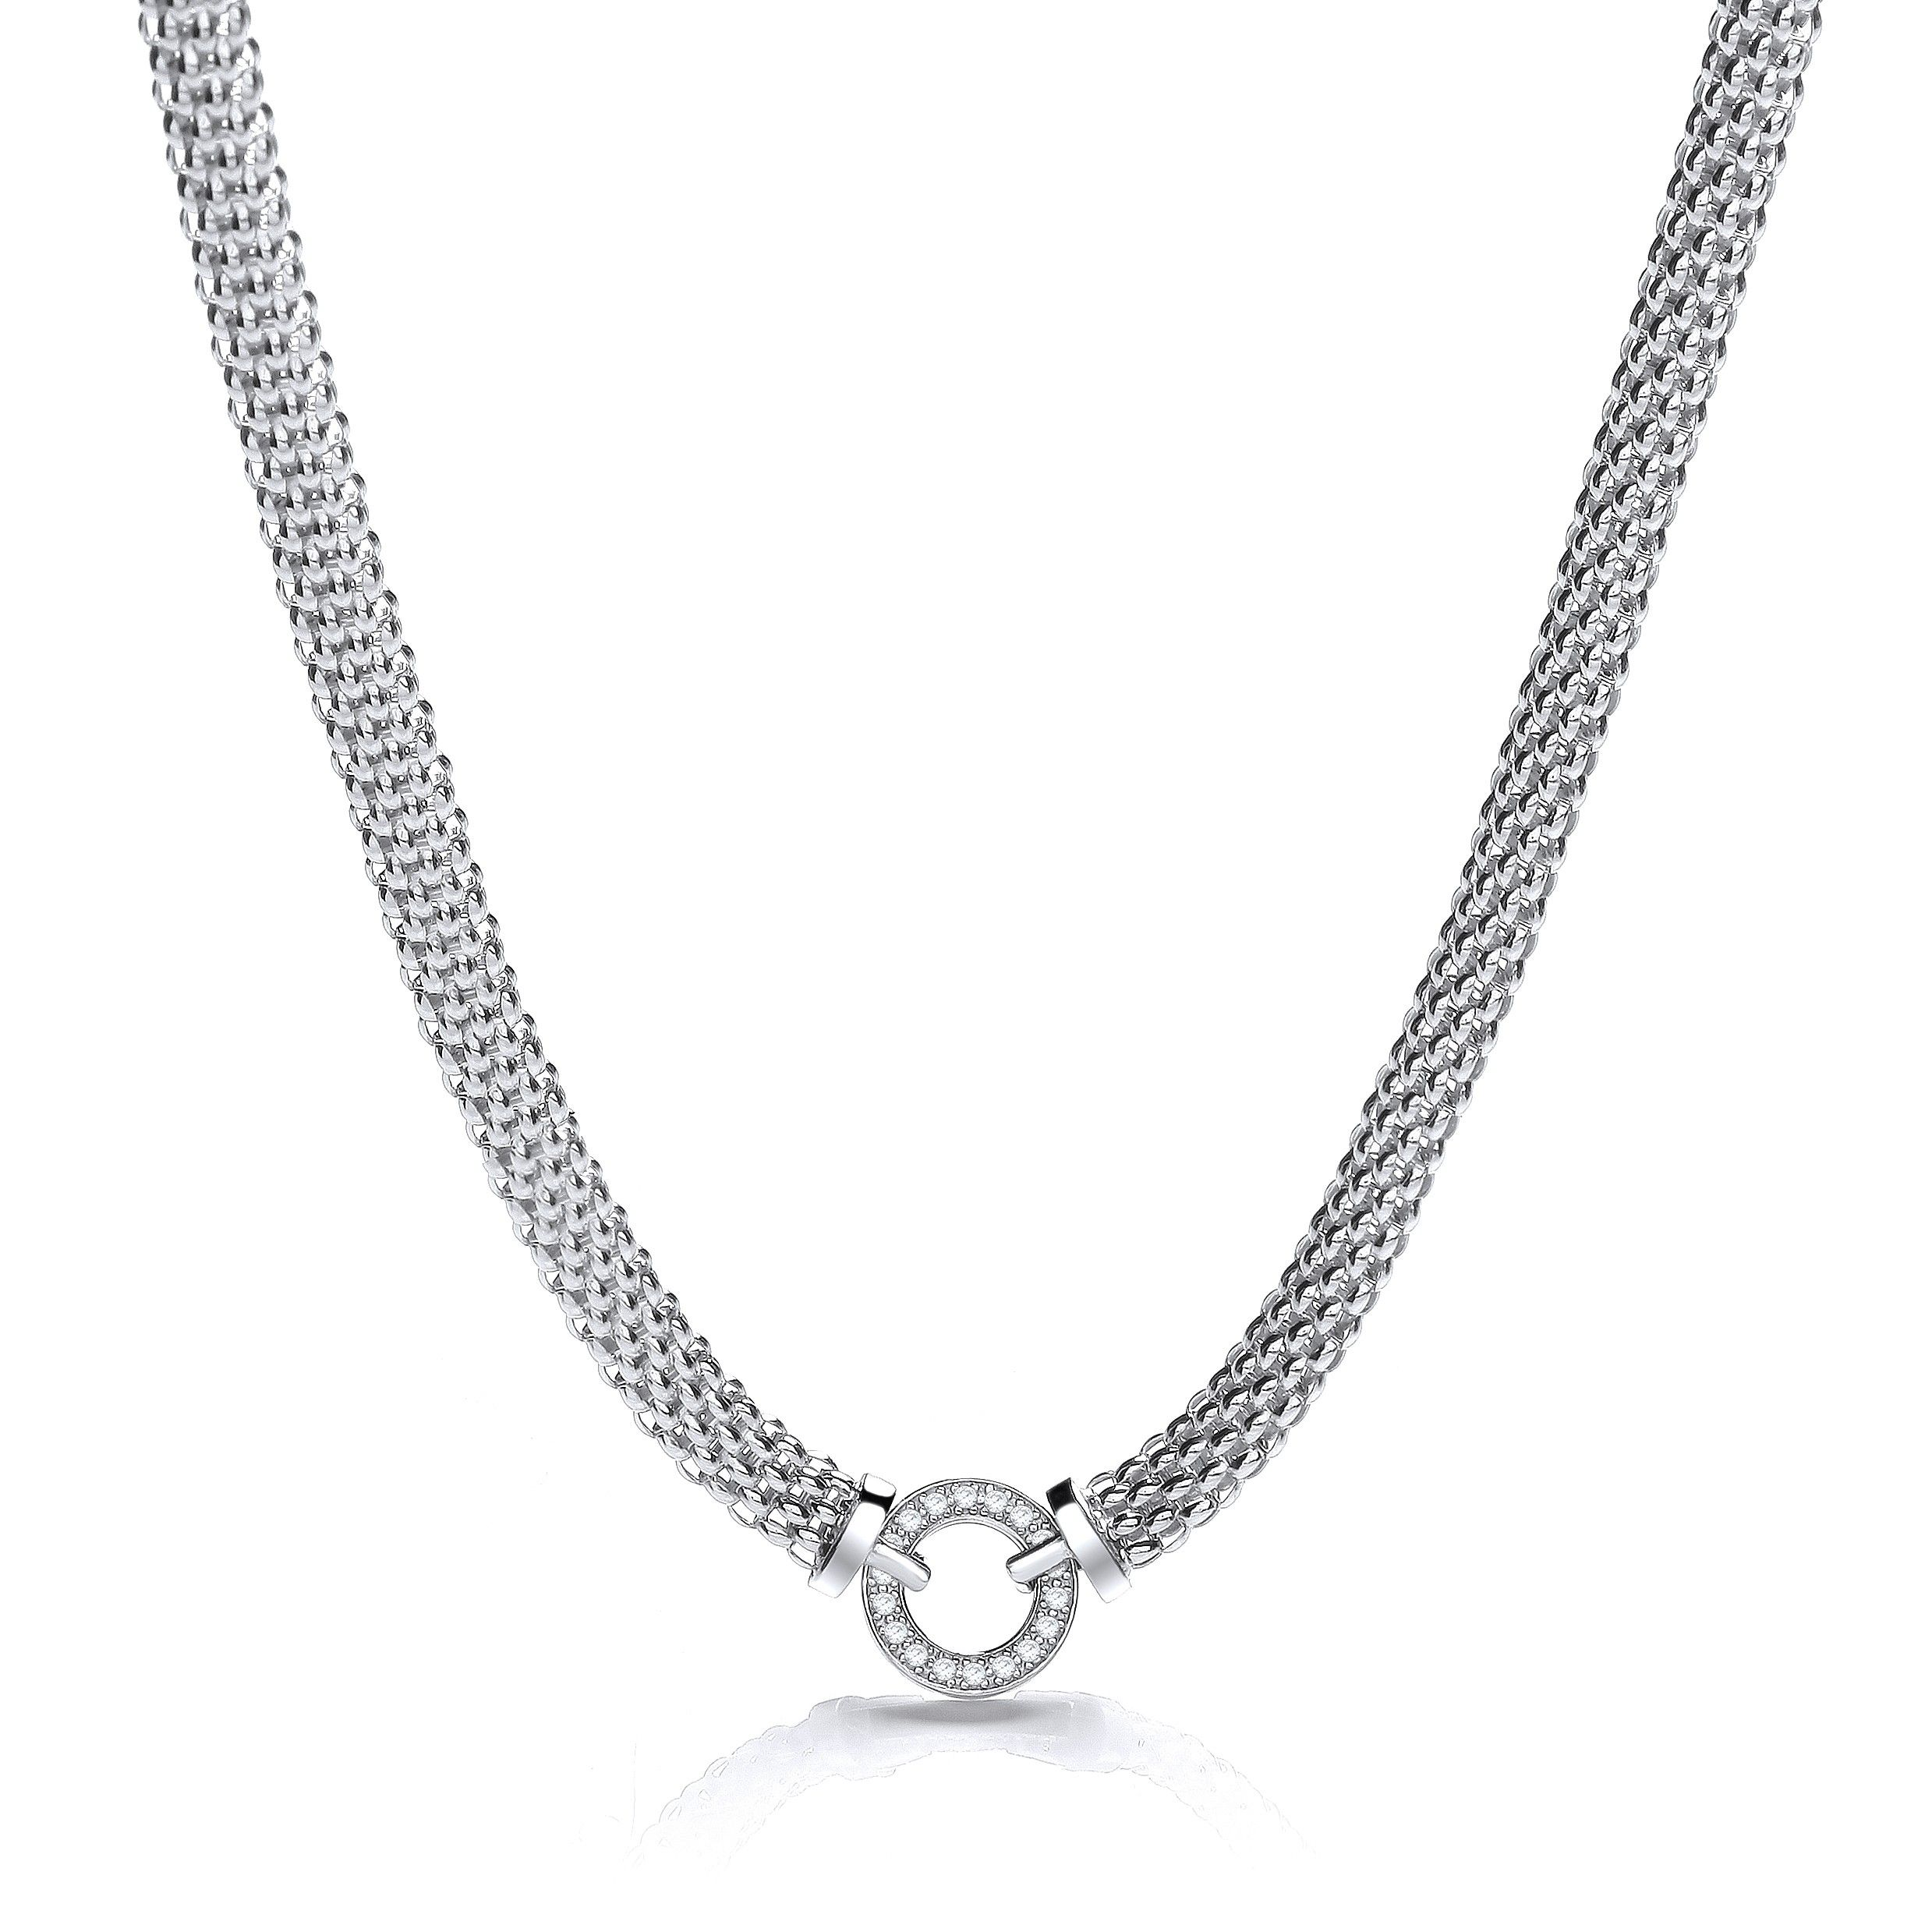 Silver Fancy Necklace Set With Cubic Zirconia 17